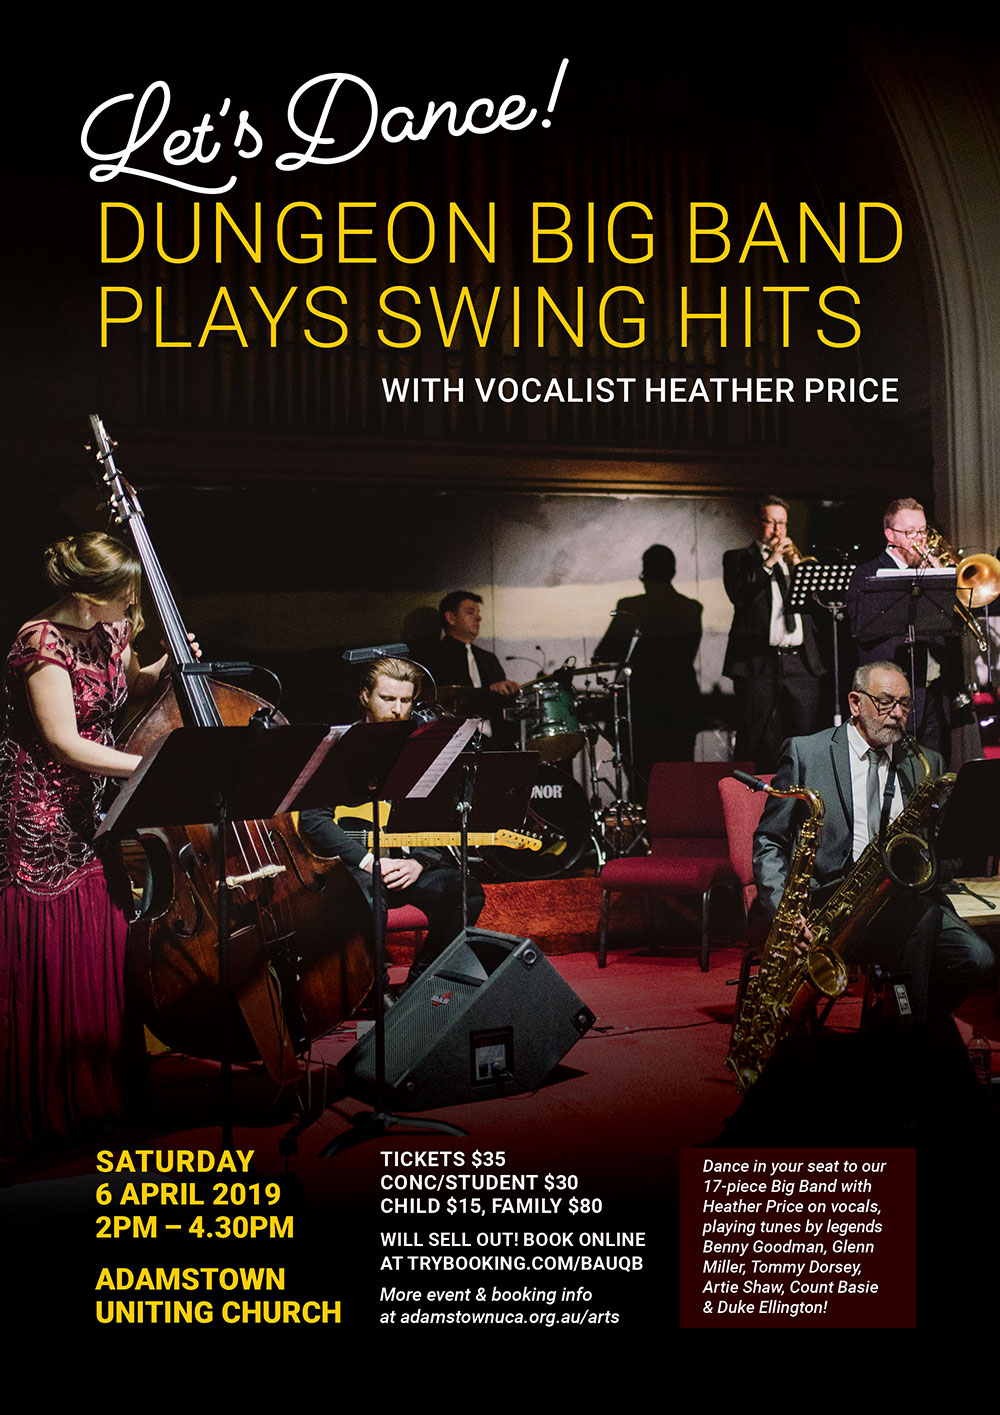 Dungeon Big Band event poster